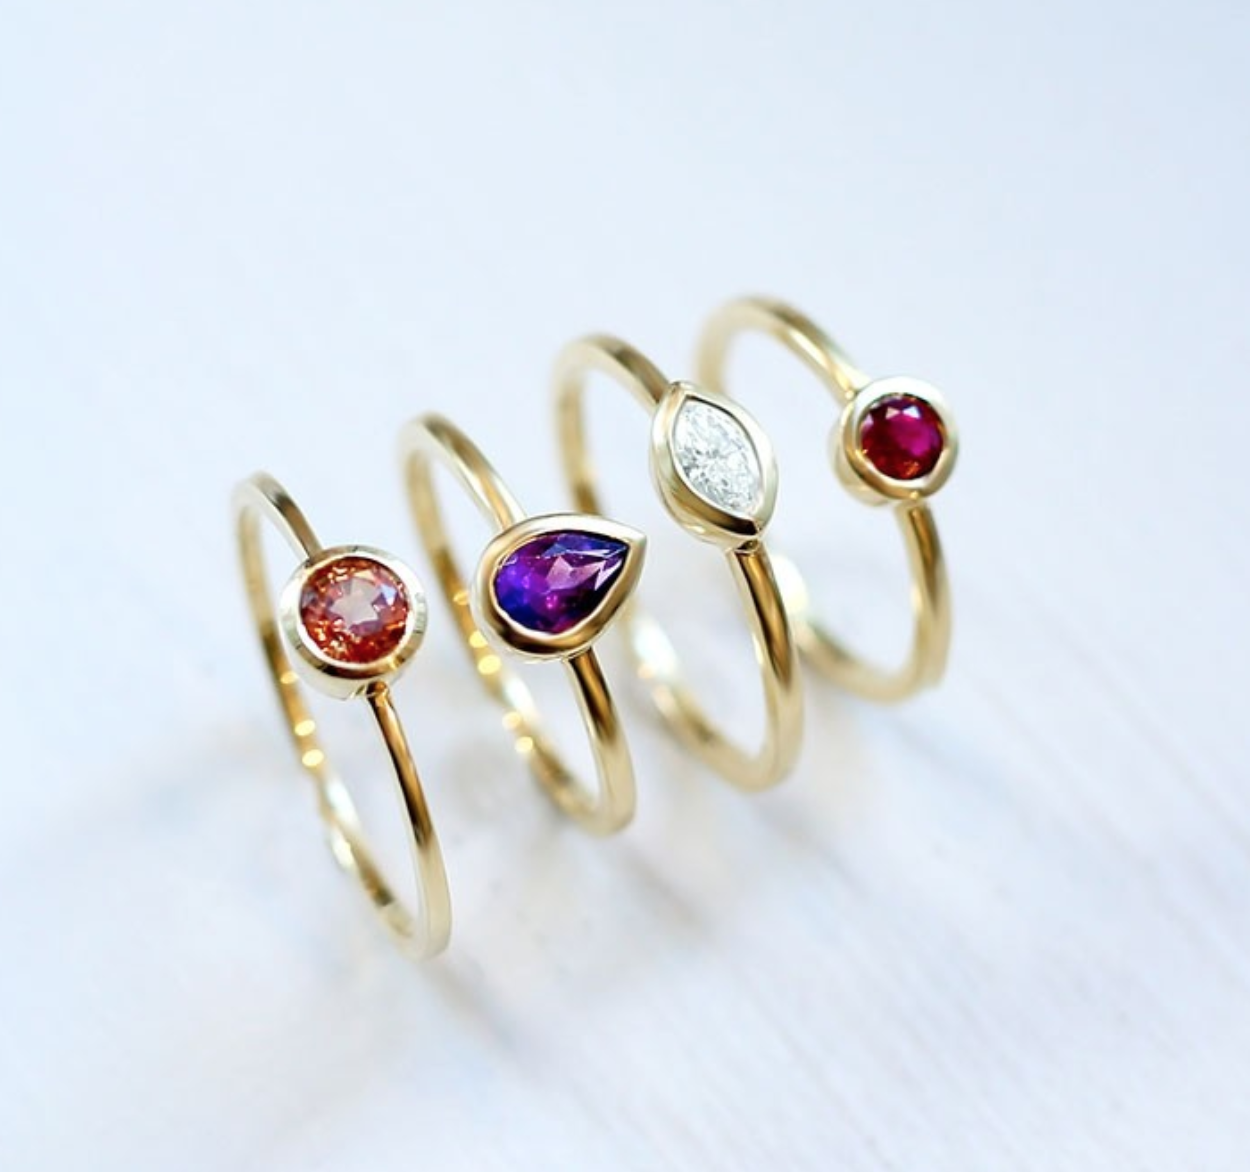 Stackable rings, yellow gold from $695 to $1235